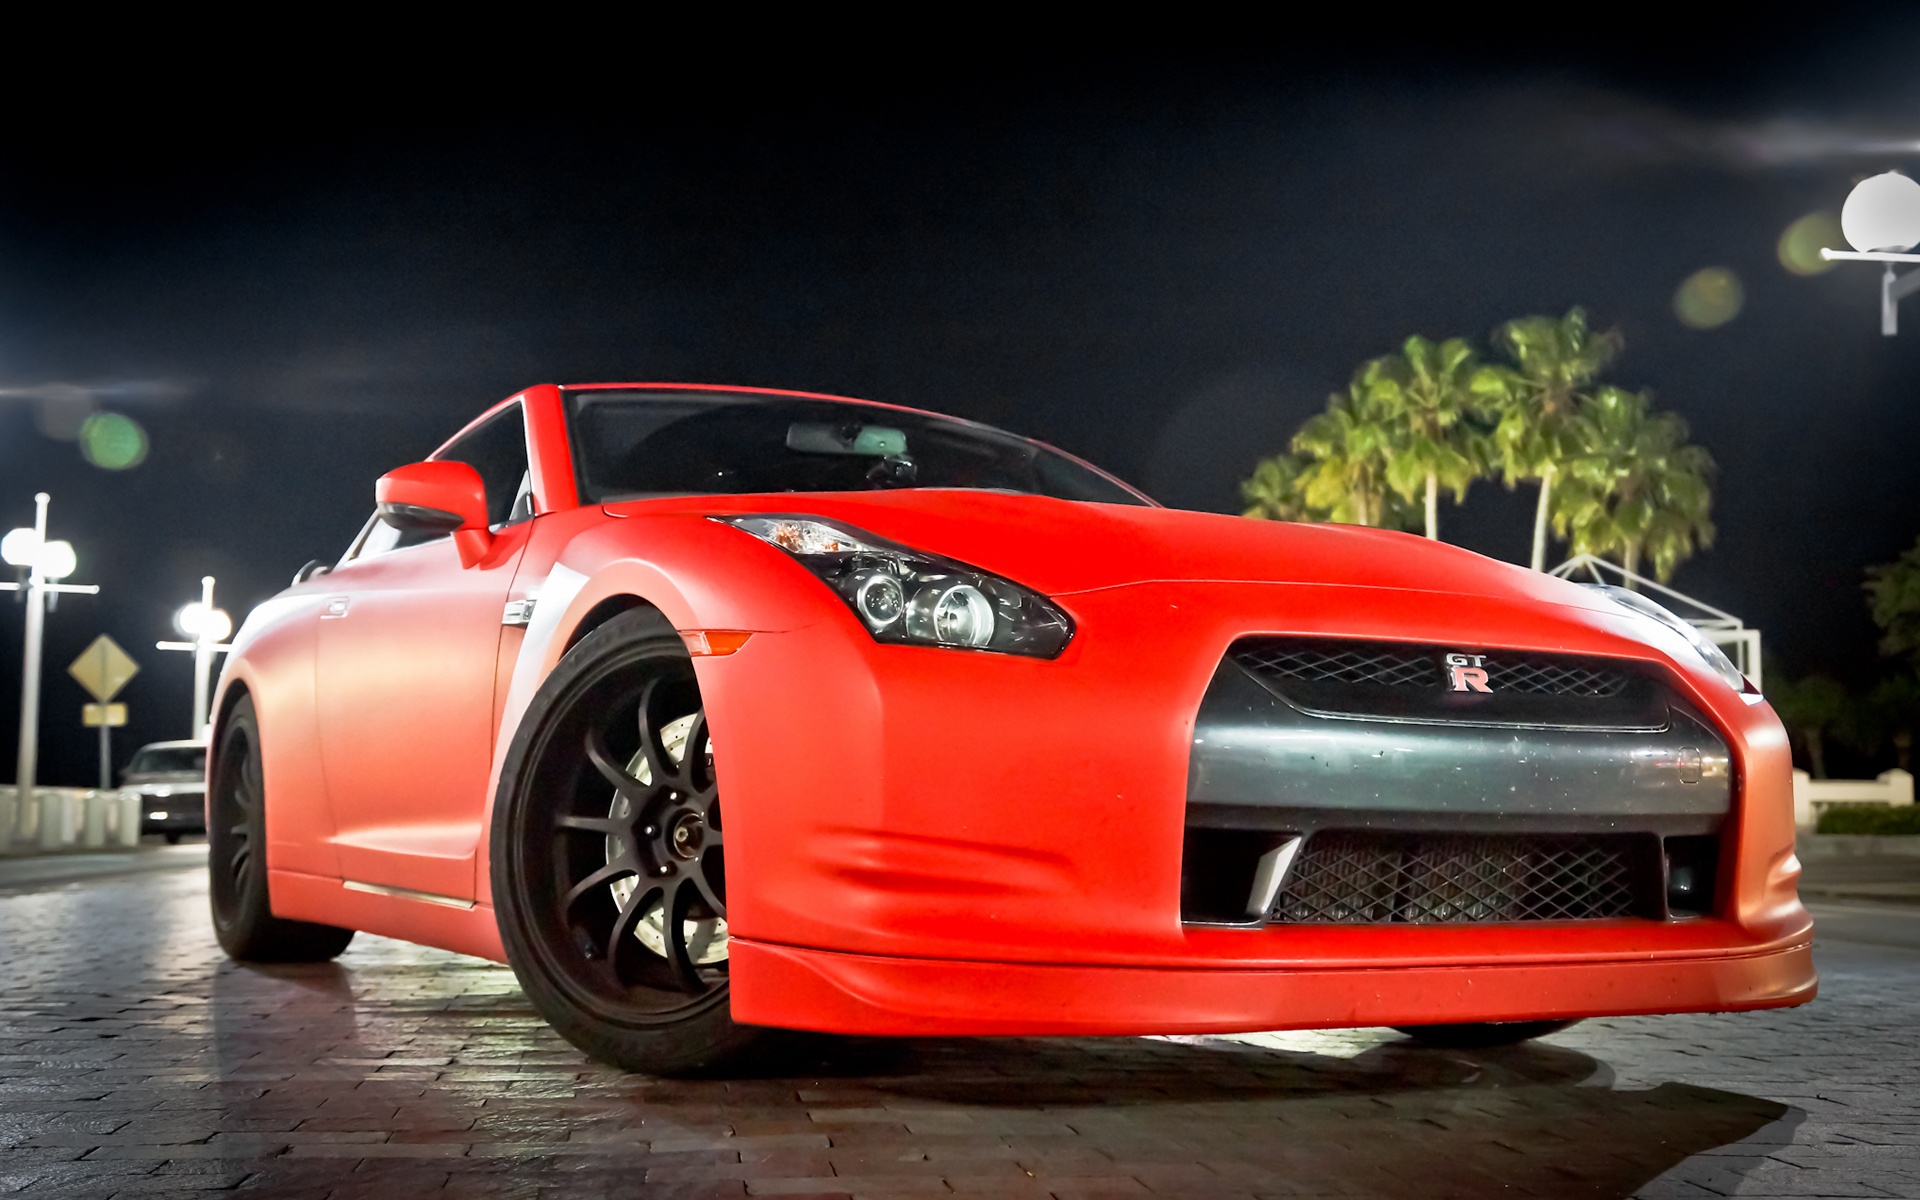 Wallpaper: Nissan GTR Matte Red